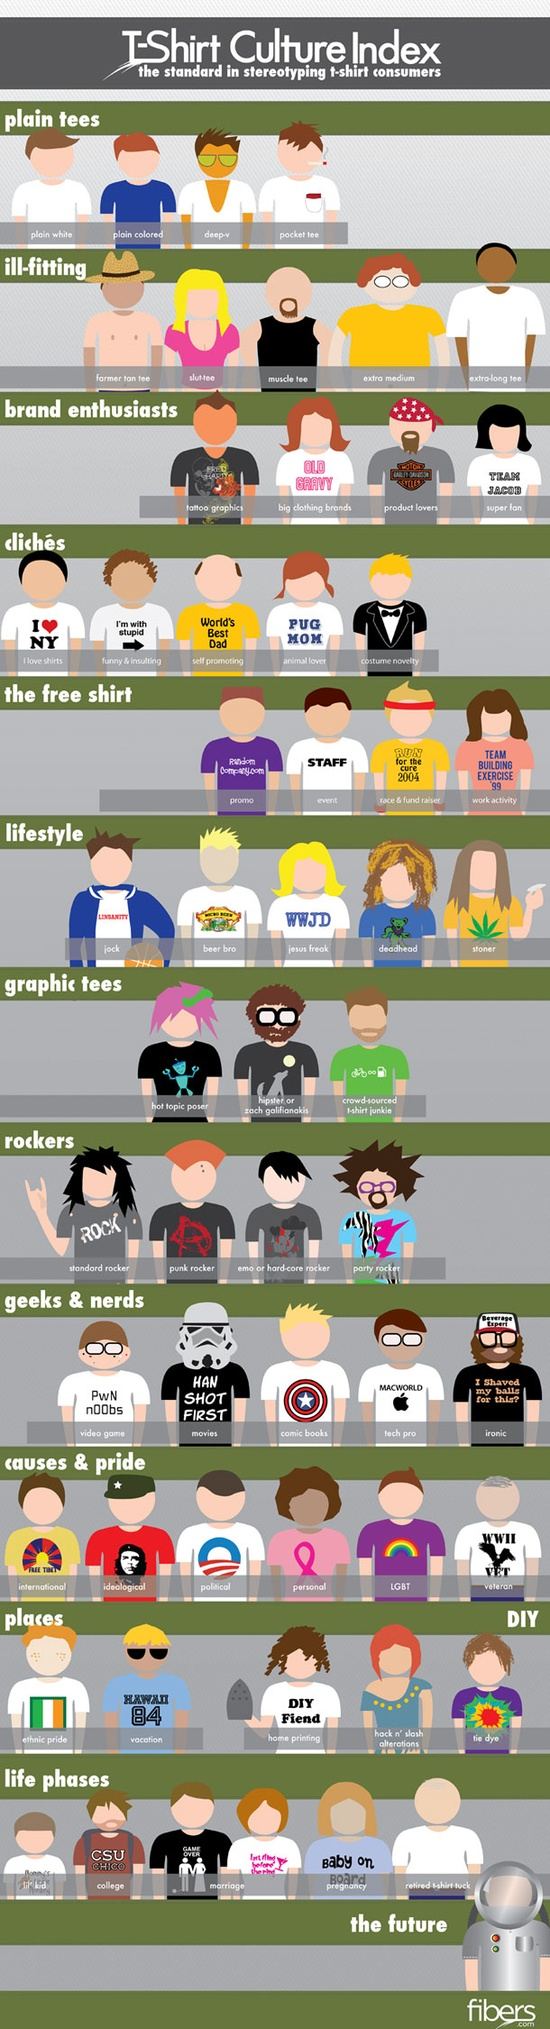 T-Shirt Culture Index – Understanding T-Shirt Stereotypes (Chart)